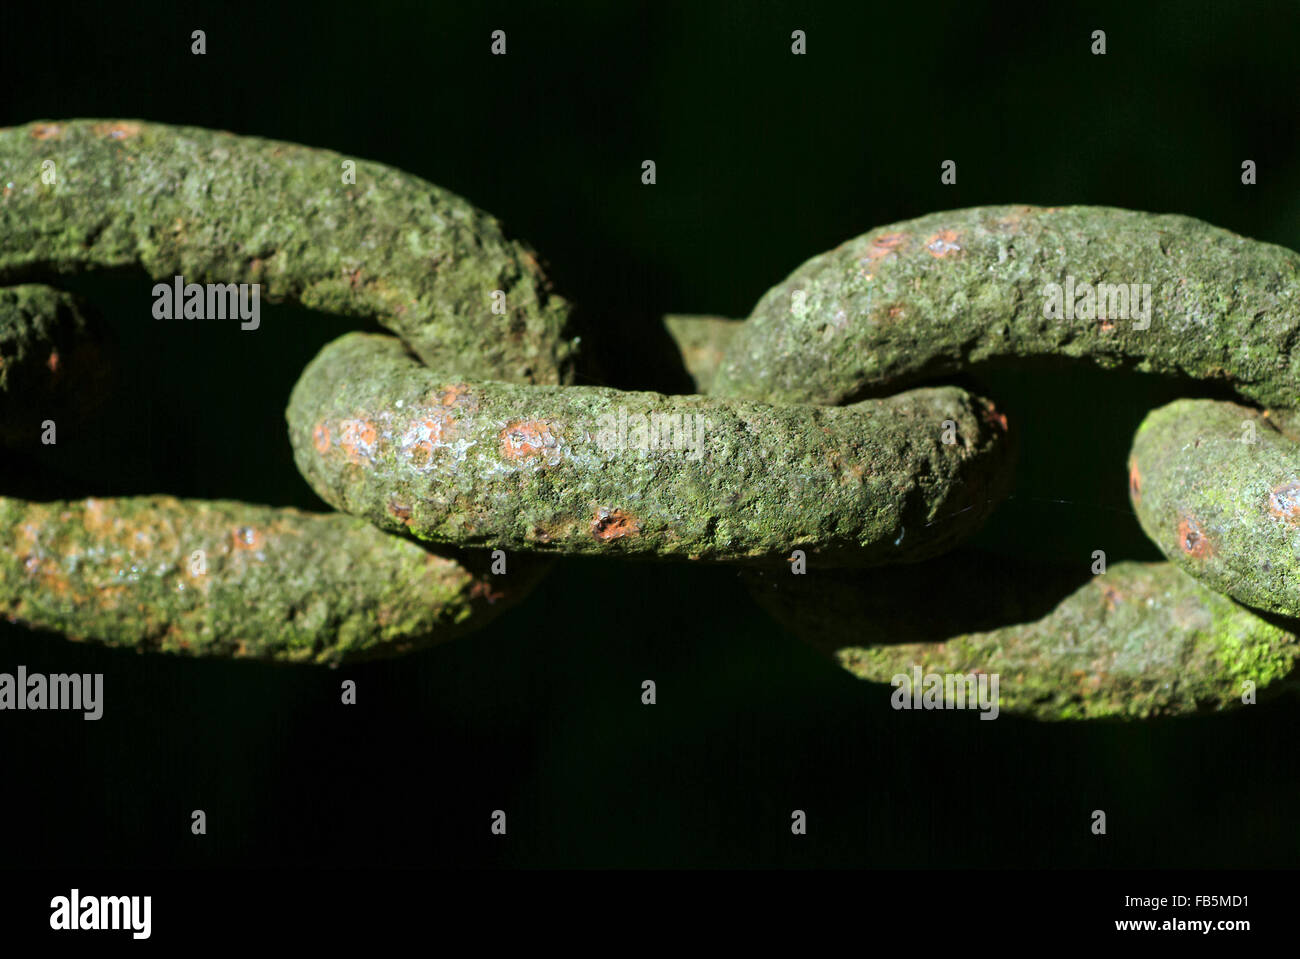 Rusty chain with black background - Stock Image